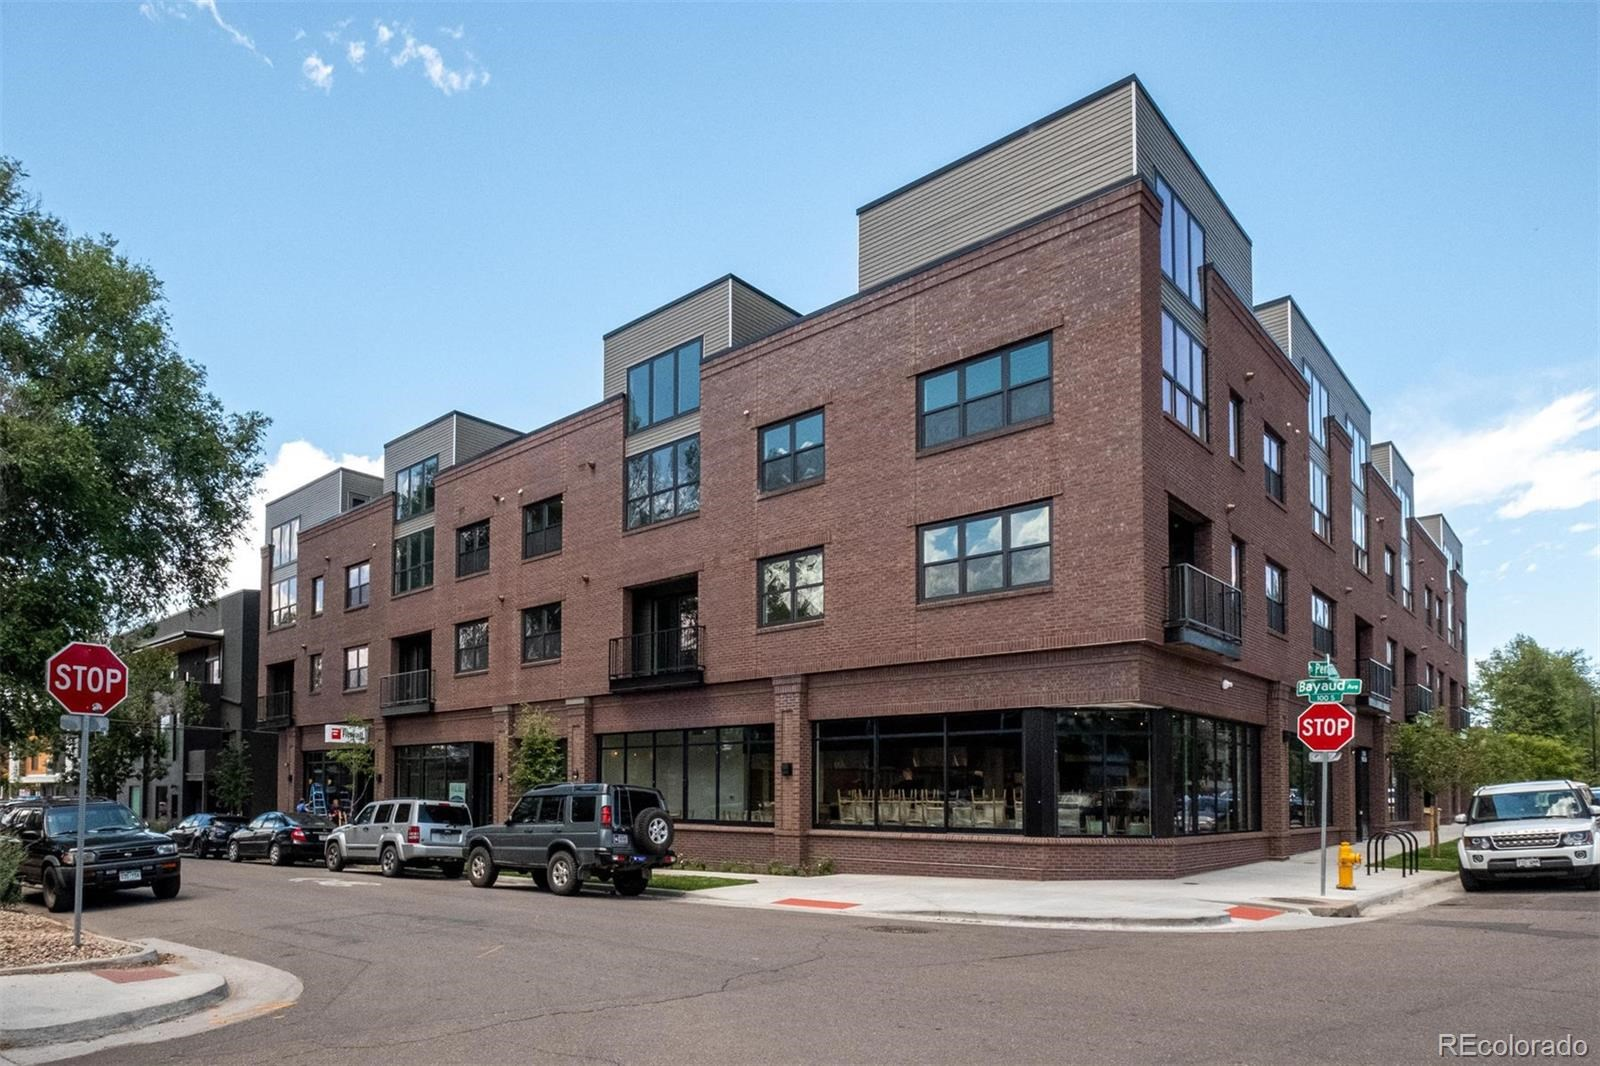 MLS# 9279302 - 2 - 431 E Bayaud Avenue #307, Denver, CO 80209